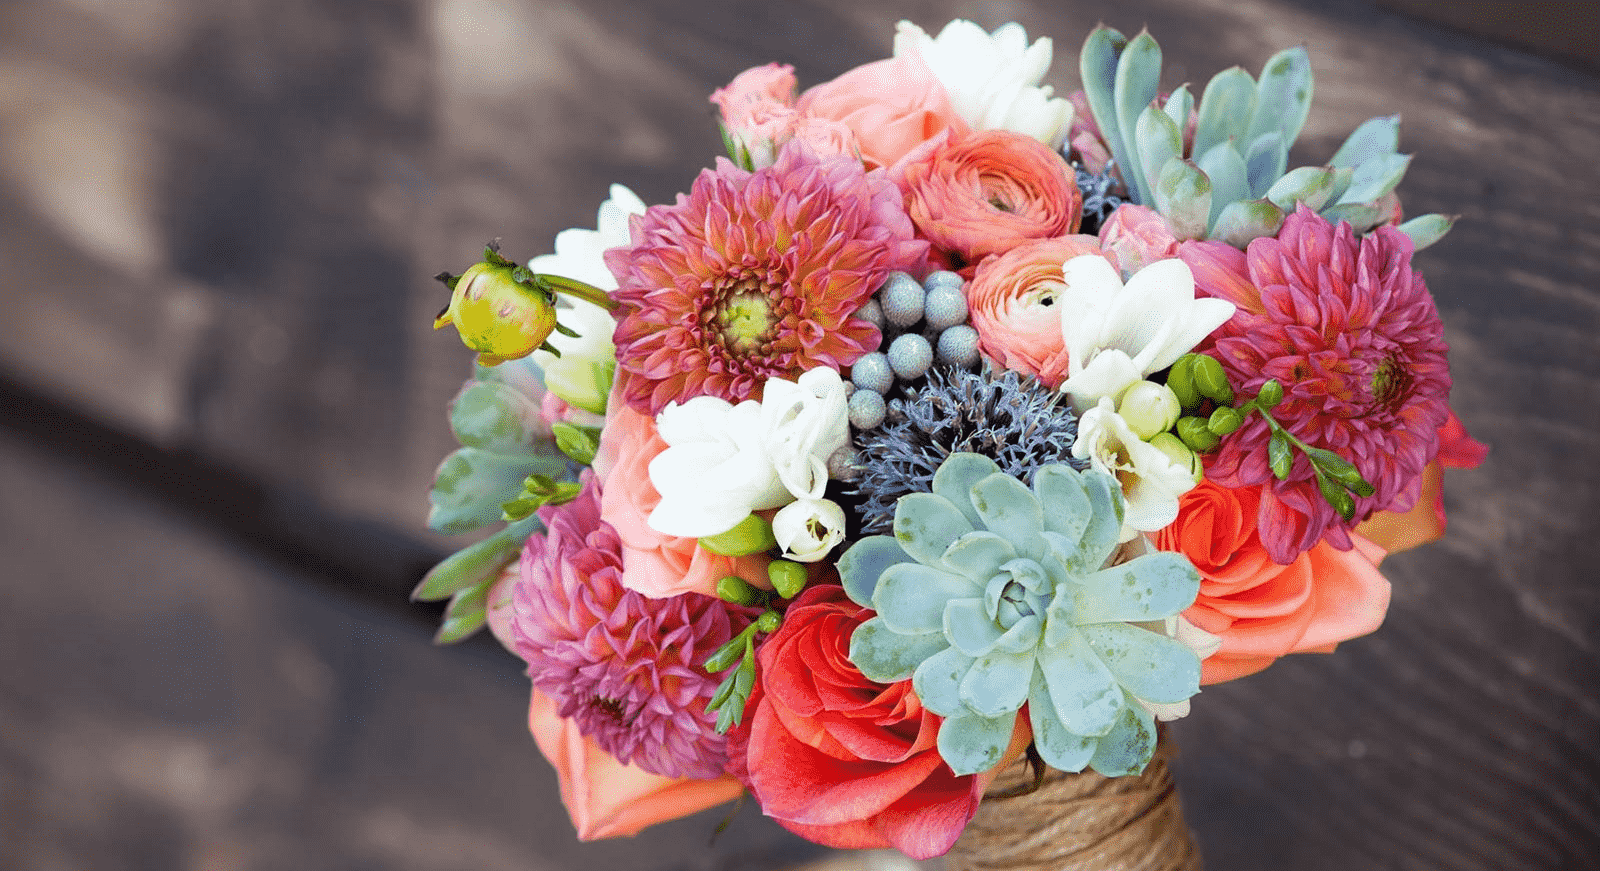 Surprise Your Loved Ones with These Fabulous Bouquets